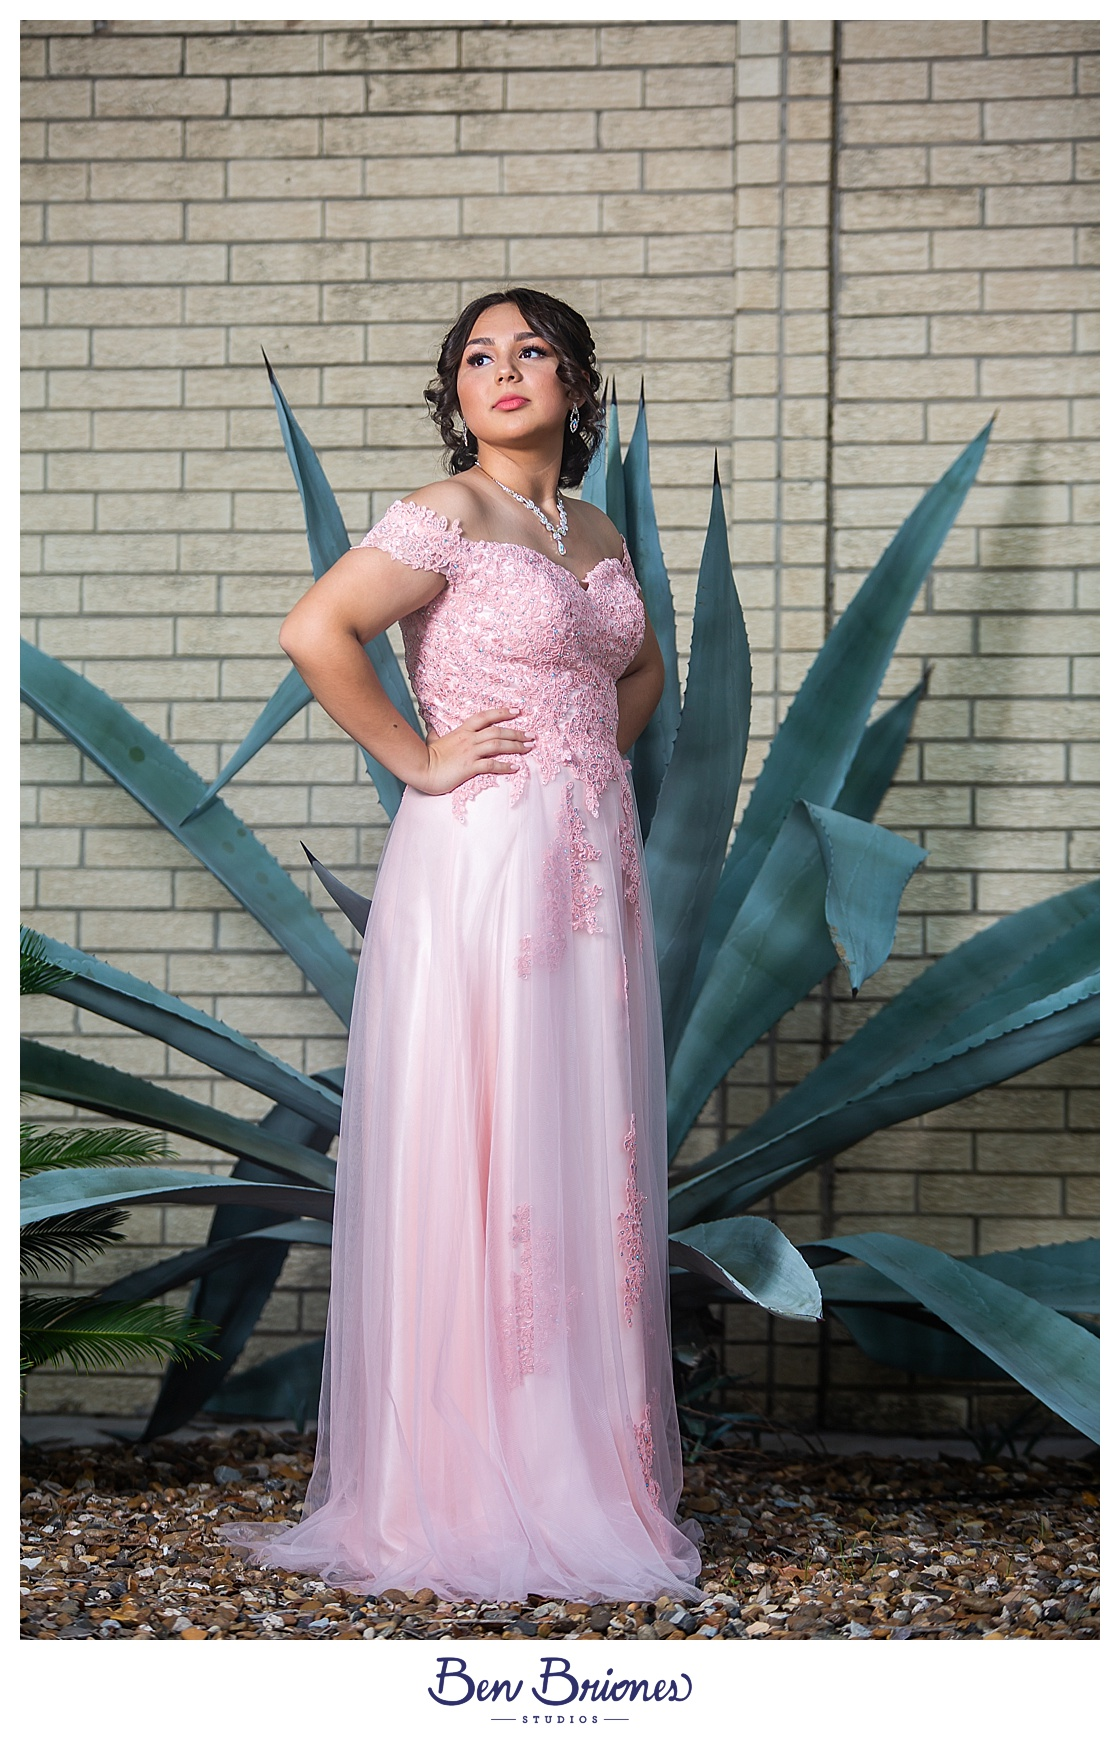 09.16.19_High Res_Dez Quince Portraits_BBP-5616_WEB